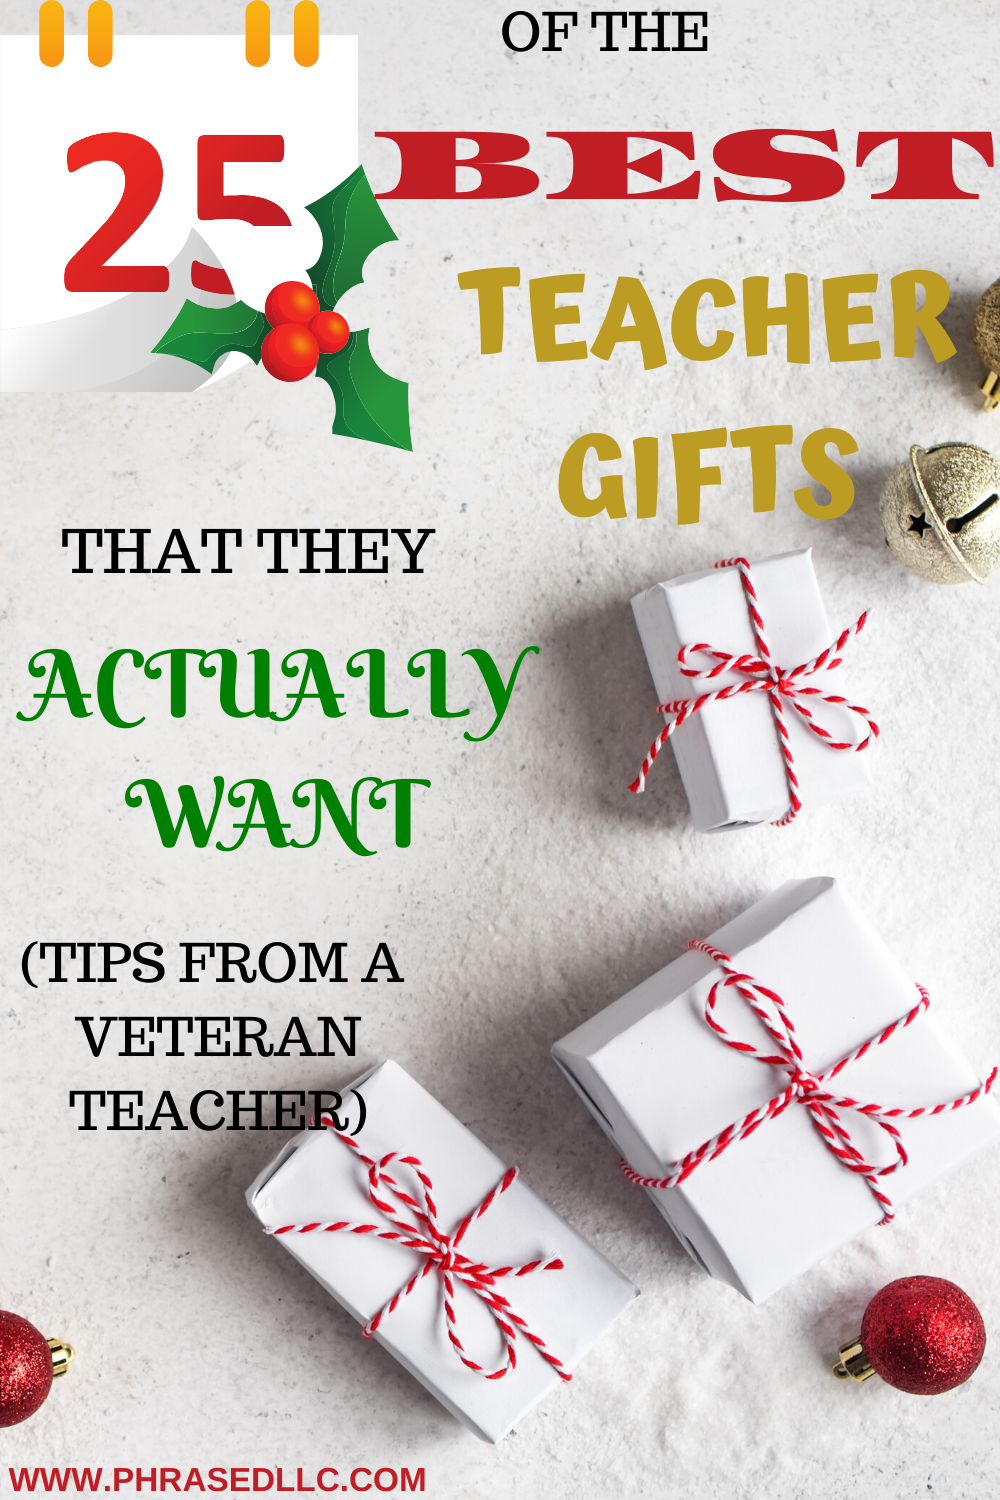 Teacher gift ideas for teacher appreciation day or week, Thanksgiving, Christmas or the beginning/end of the year. Gifts that can be personalized, homemade, and made for cheap for that the special teacher in your life/